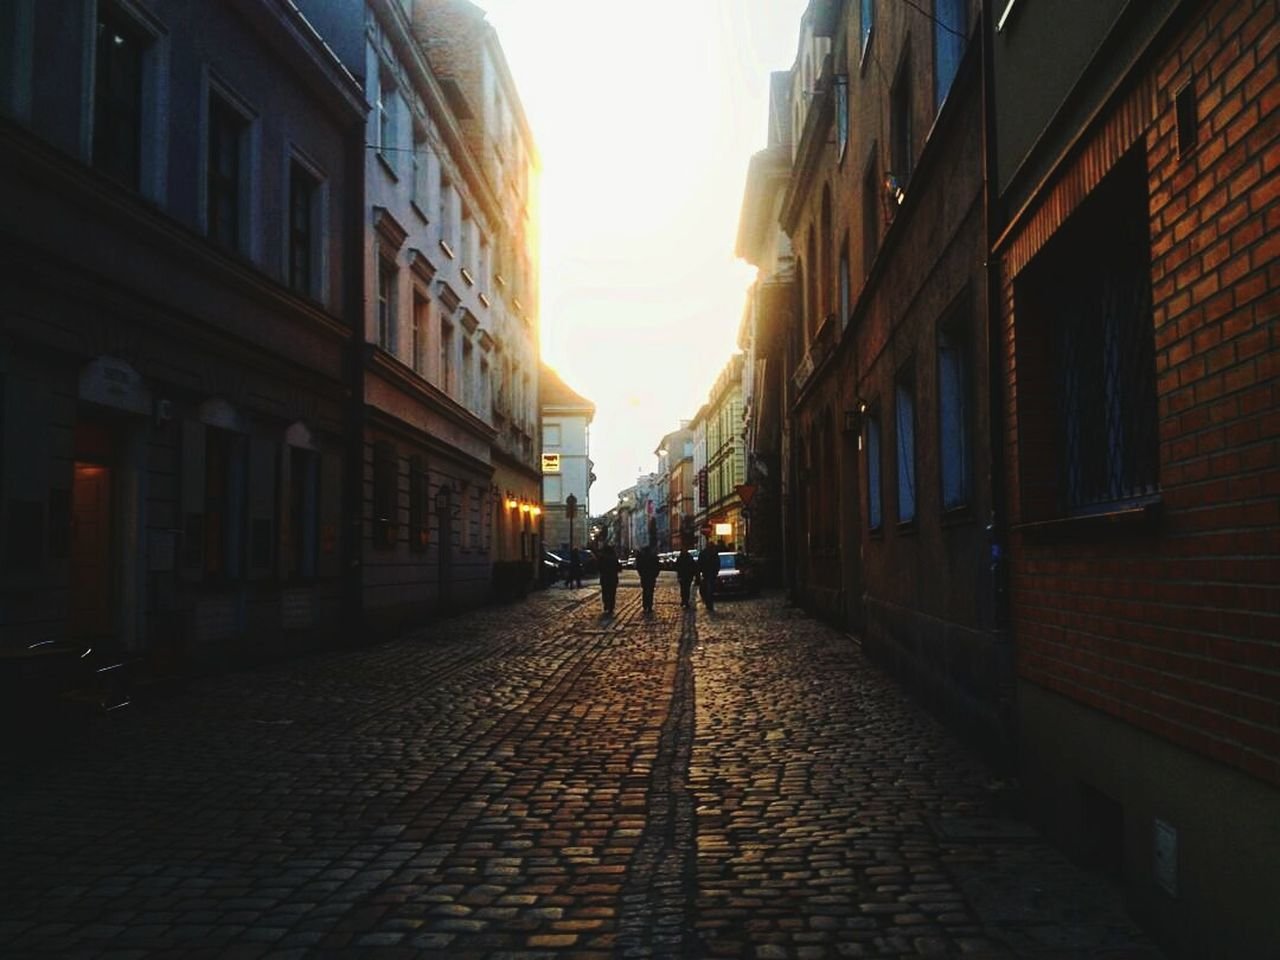 Building Exterior The Way Forward Built Structure Cobblestone Outdoors City Sky Day Architecture Architecture Traveler Travels Travel Destinations People And Places Art Beauty Indoors  Architectural Column People Krakow Sun Morning Morning Sky Morning Light Lifestyles